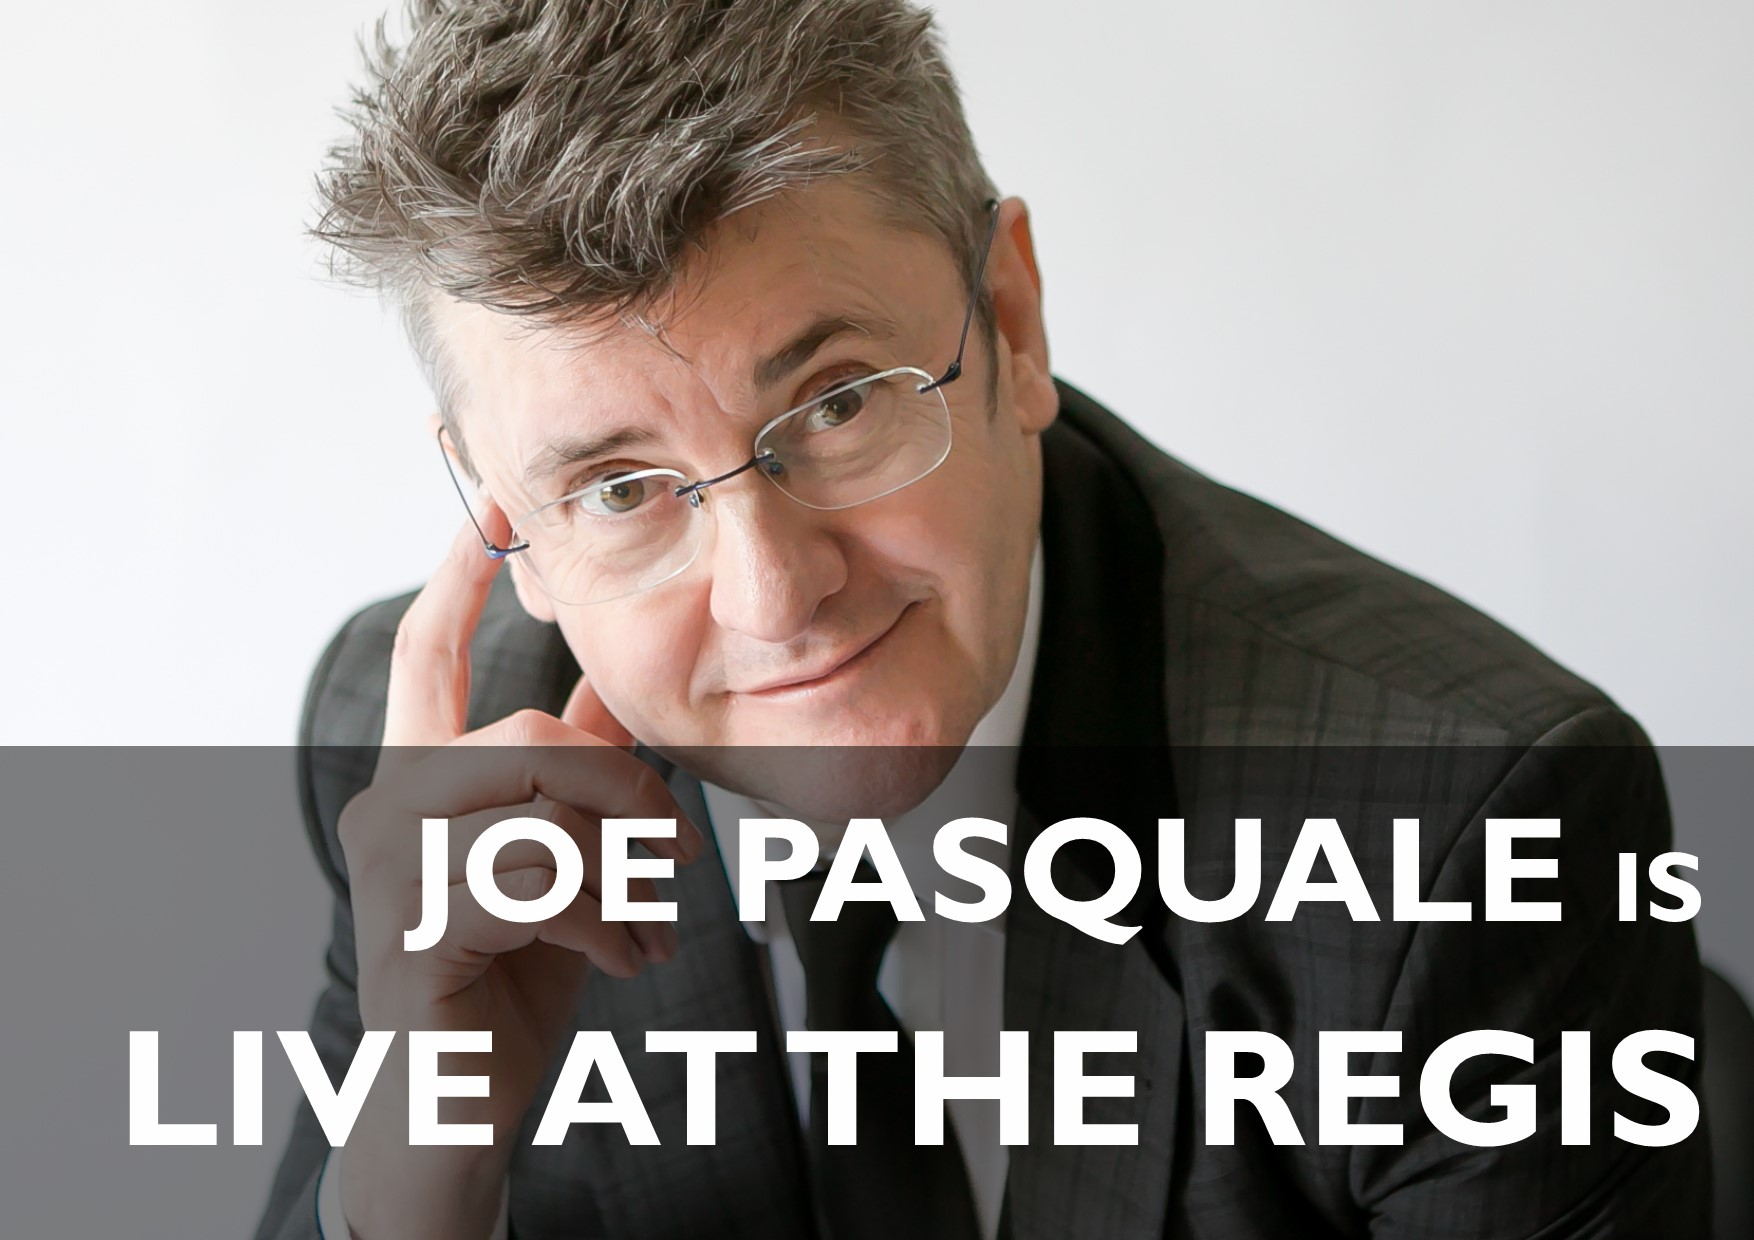 Live at the Regis with Joe Pasquale